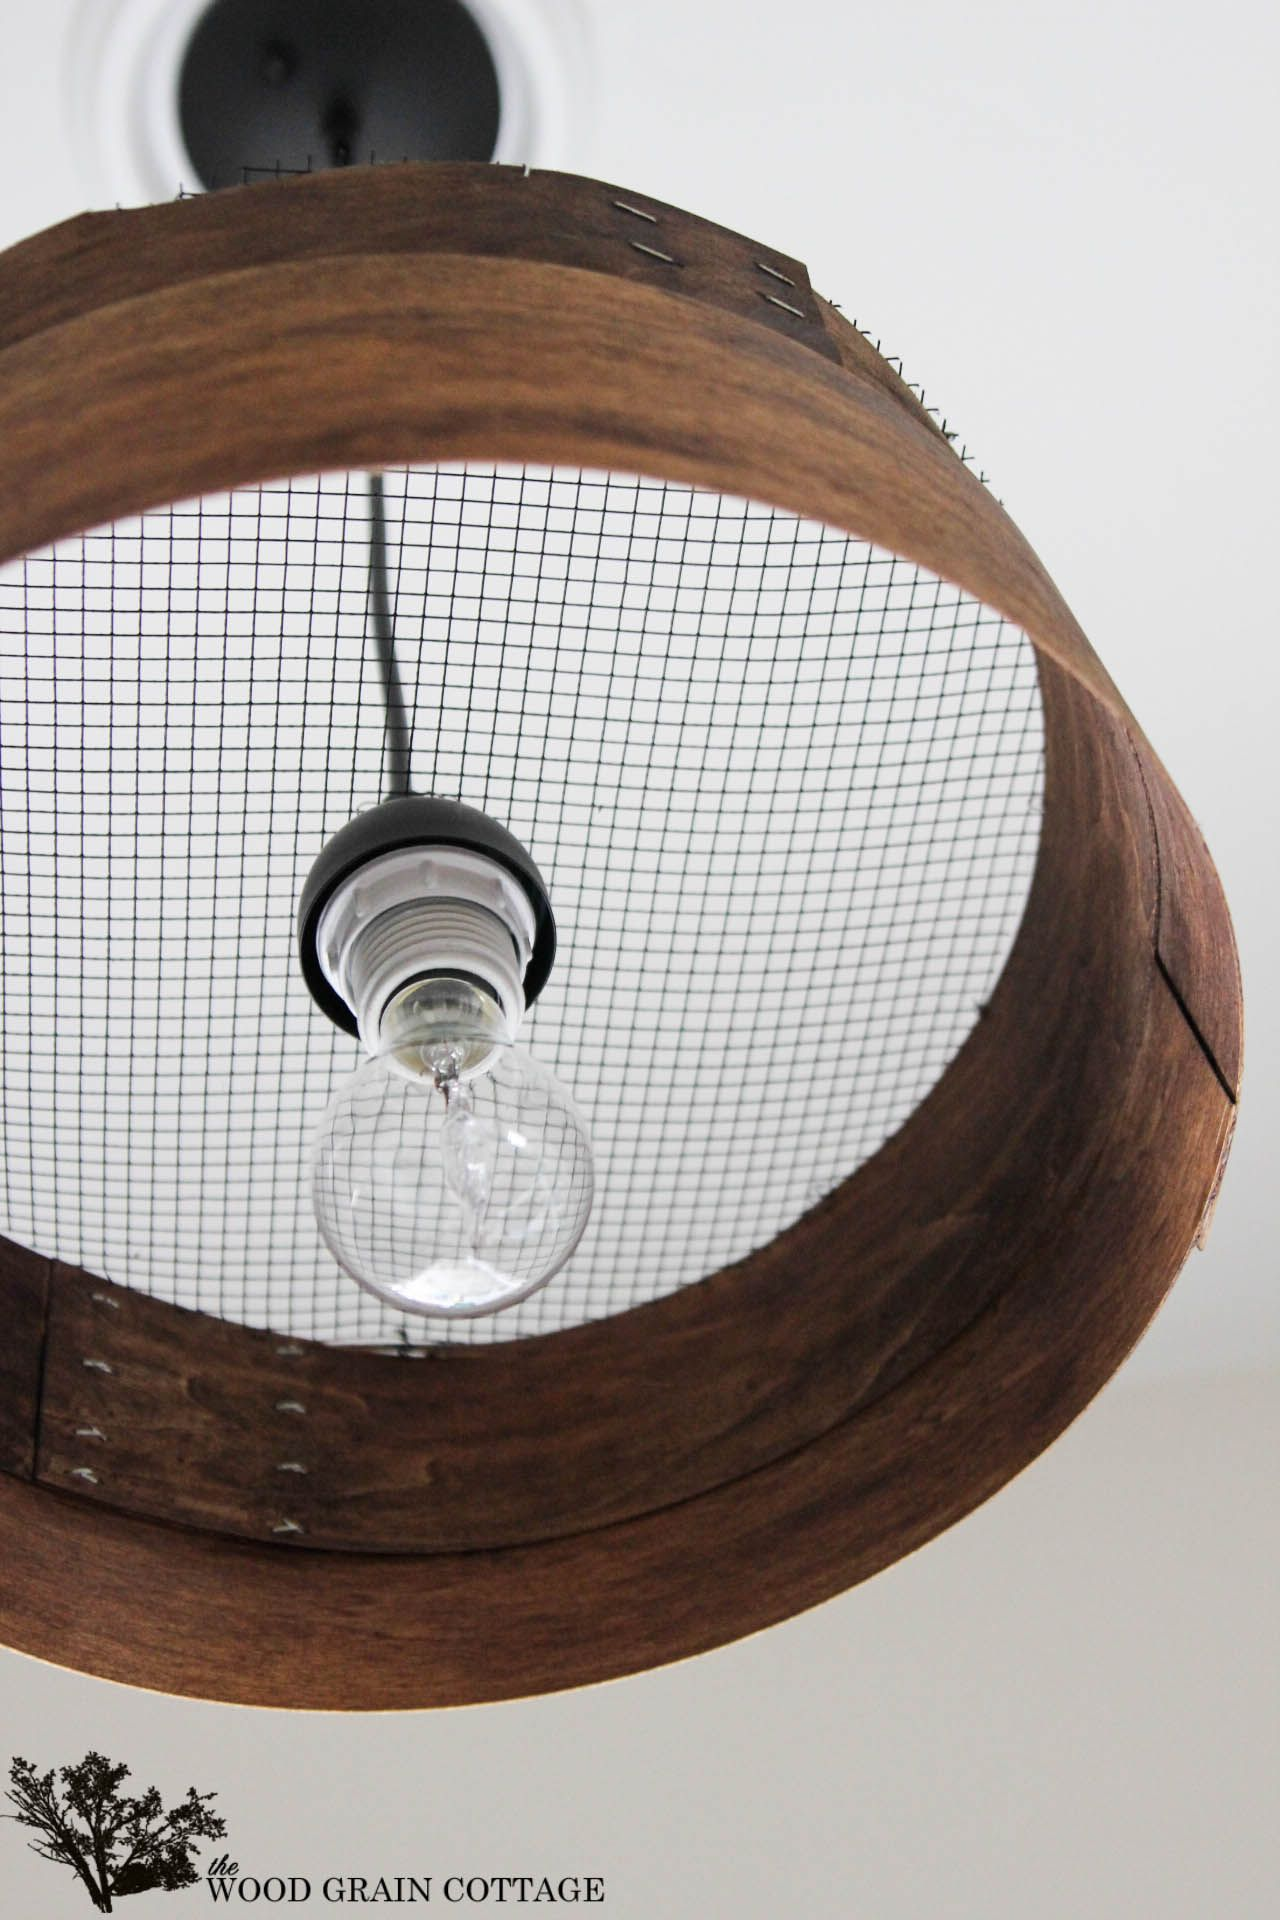 Knock Off Grain Sieve Light Fixture | Lampadari, Luci e Lampade